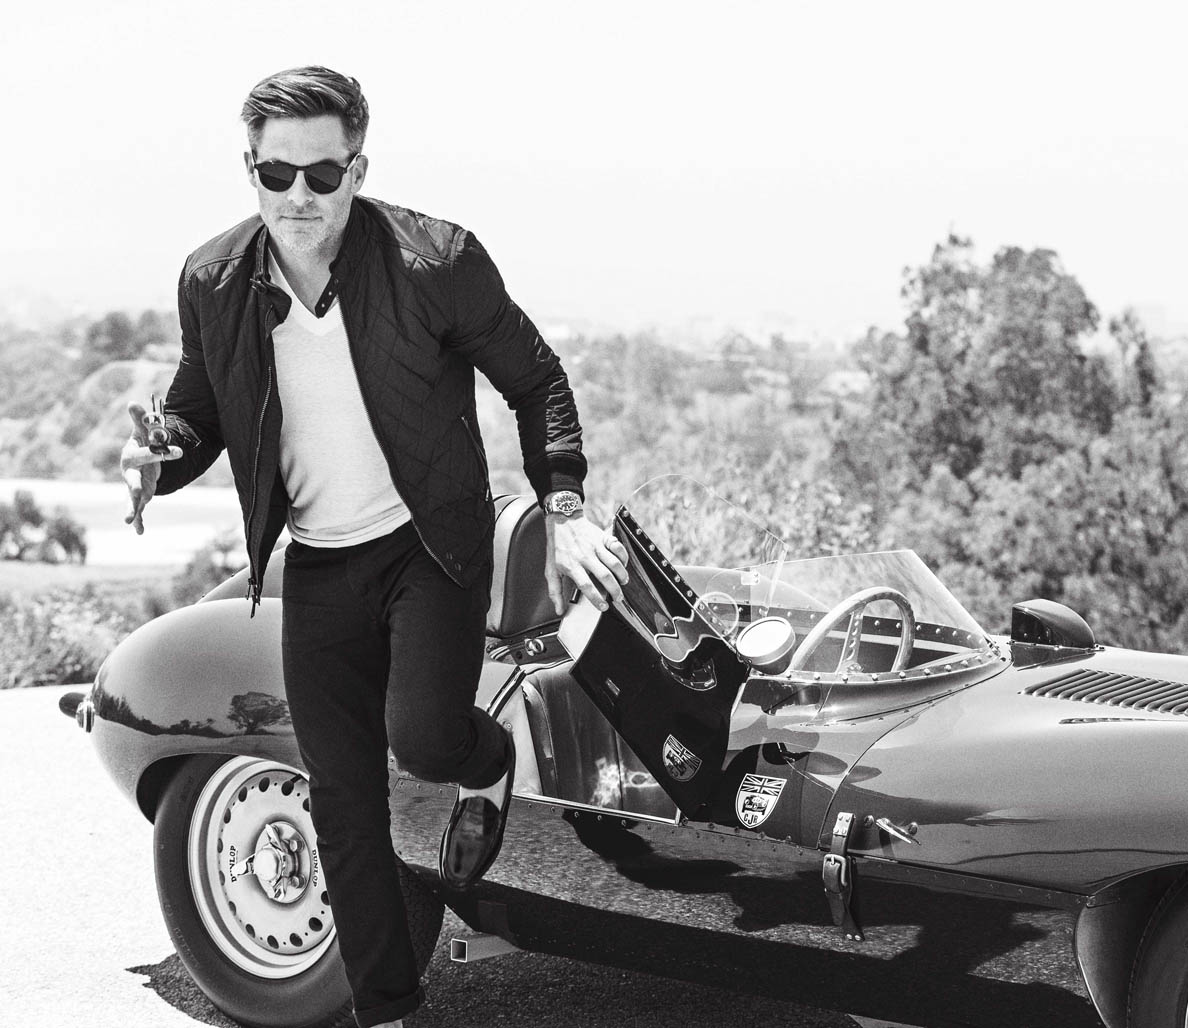 Chris Pine in the July/August issue of Men's Fitness. Photo by Ben Watts